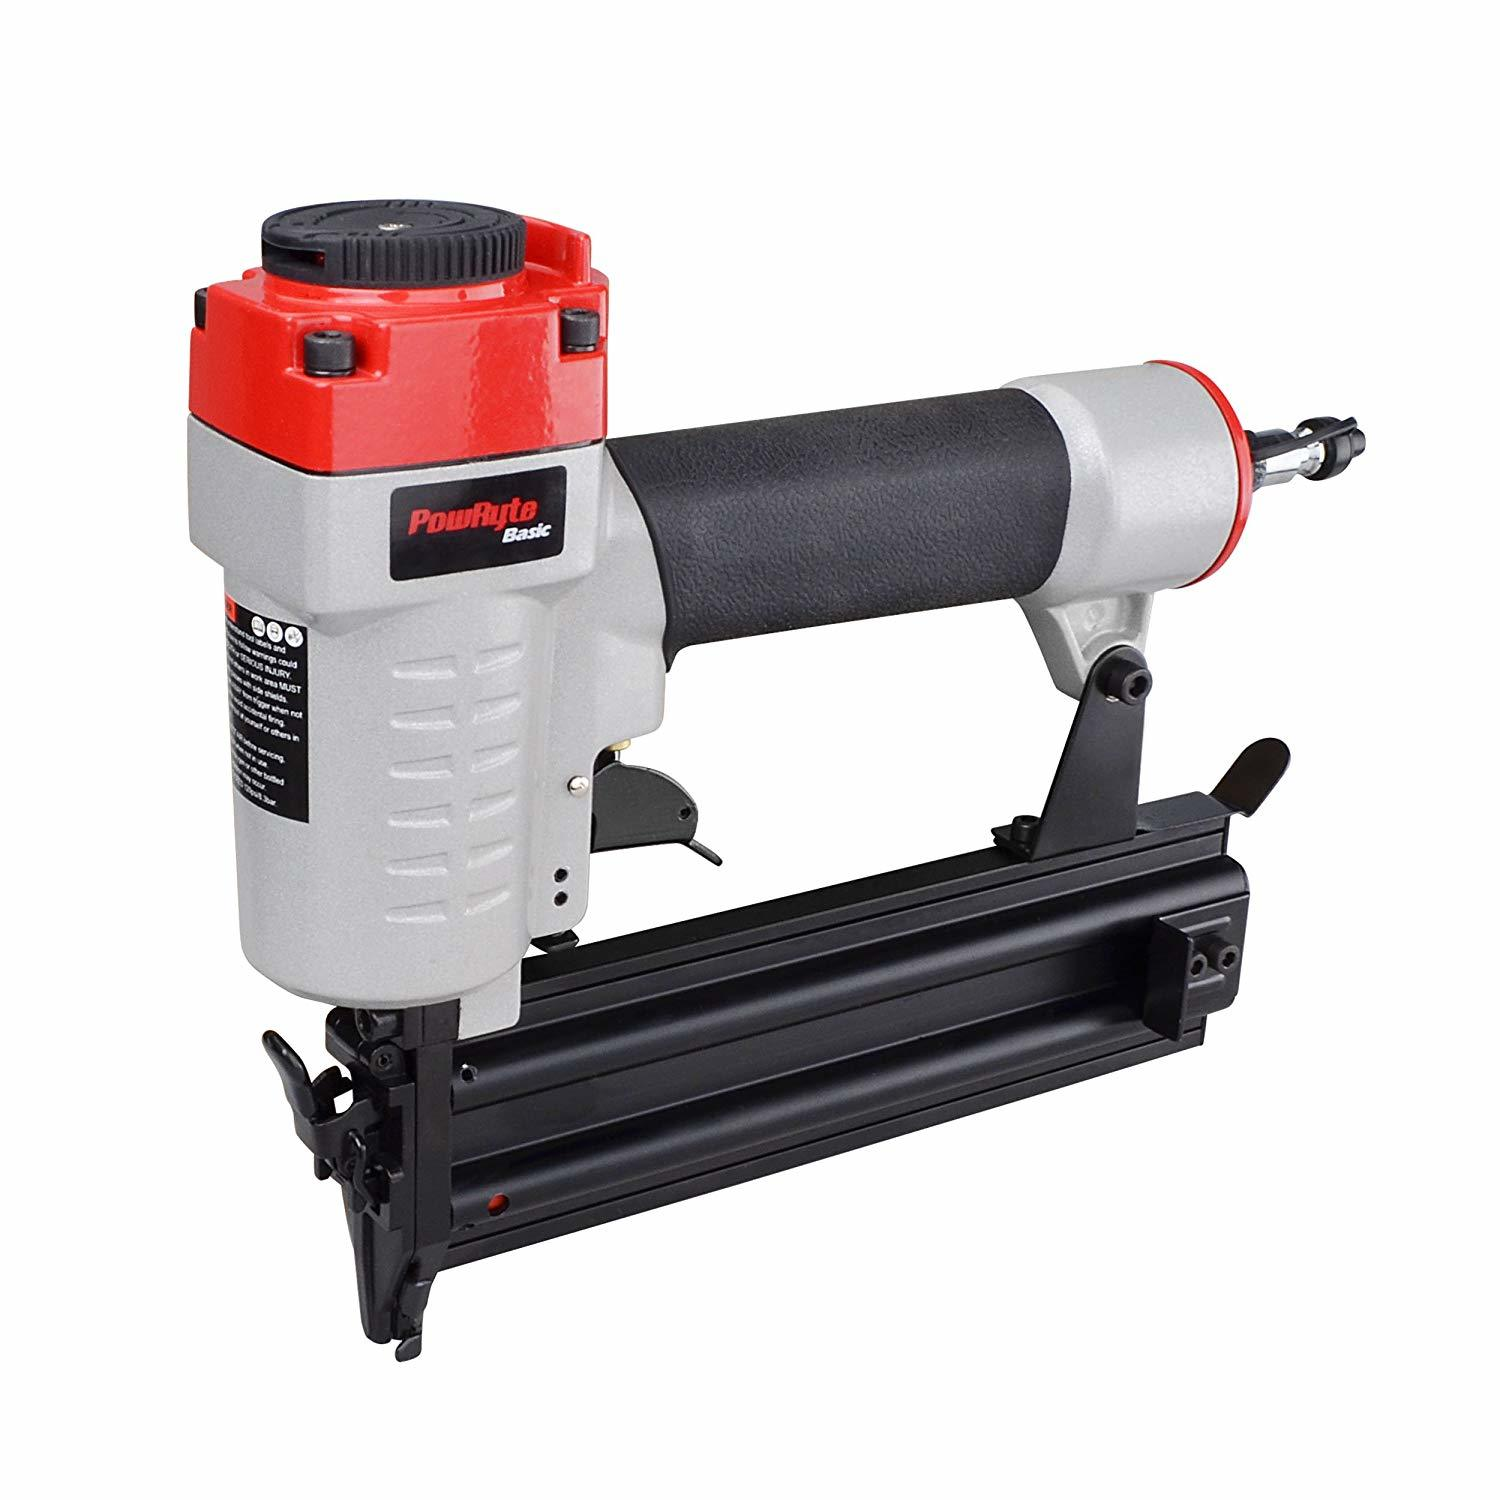 PowRyte 18 Gauge Air Brad Nailer with Tool-Free Jam Release Mechanism